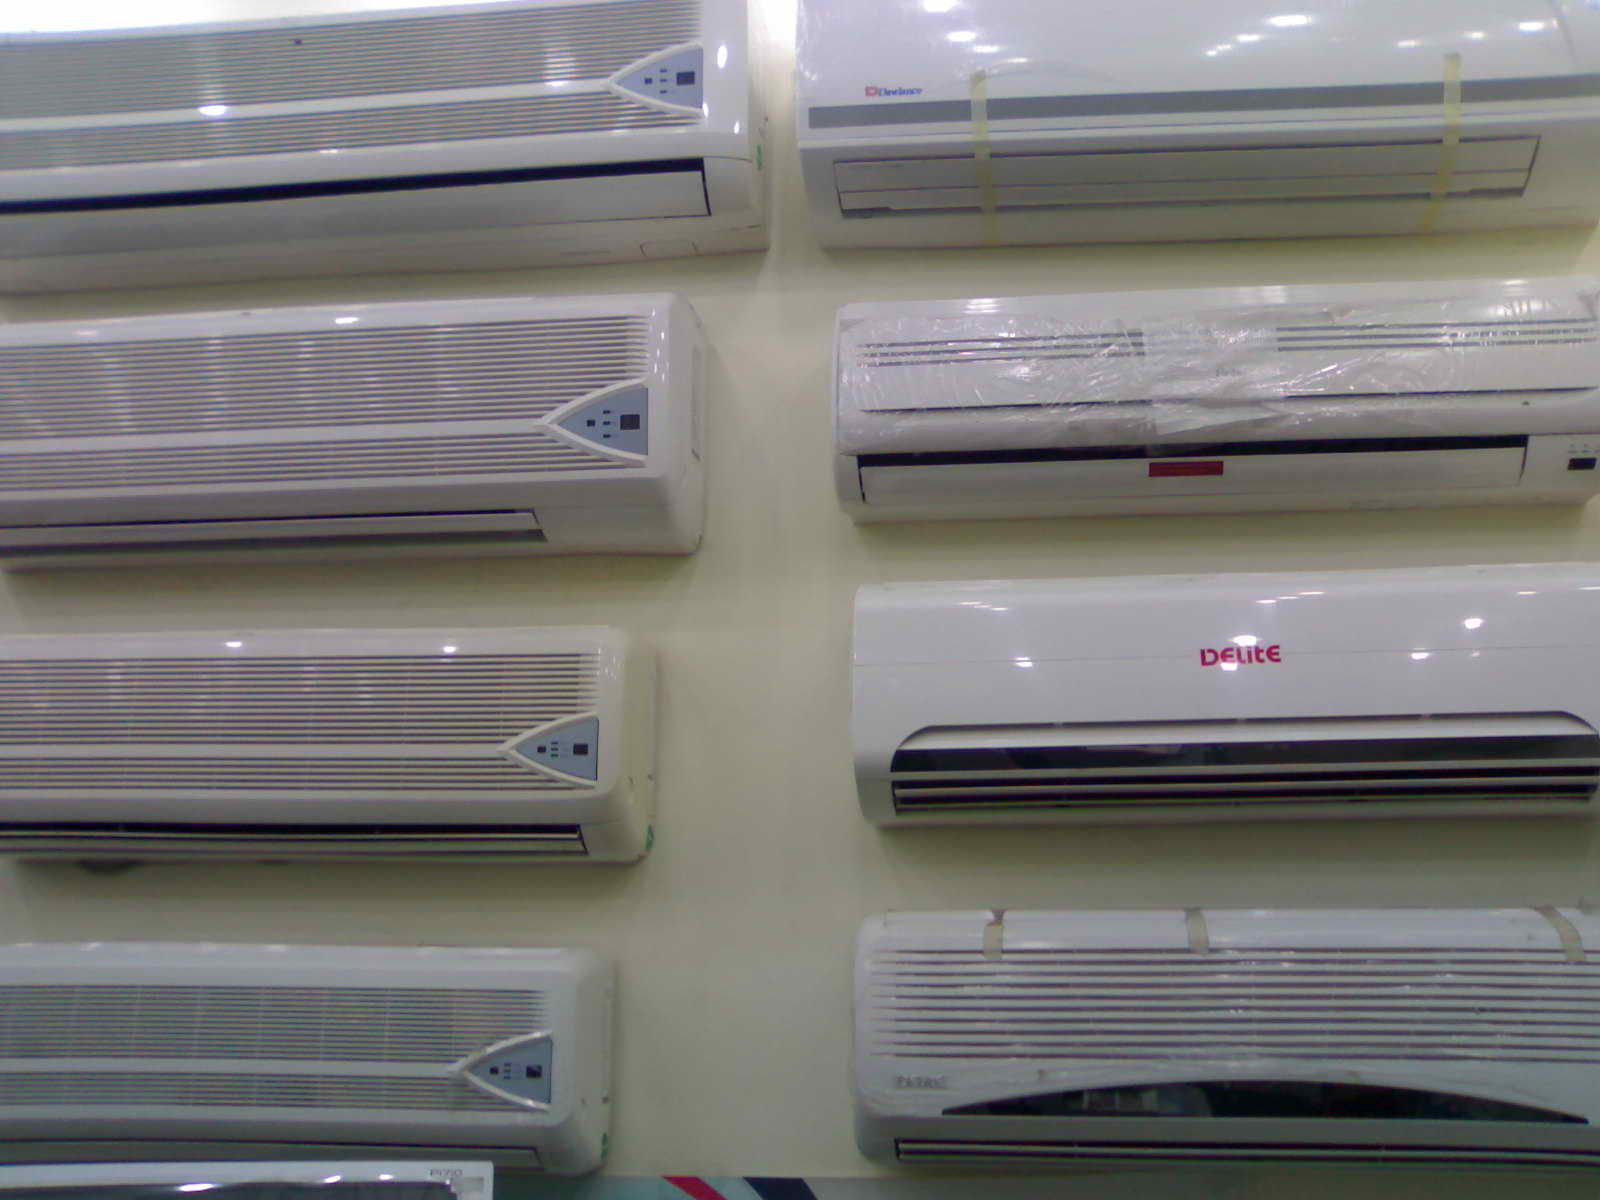 Wall Mount Airconditioner : Beautiful wall mounted ac netbakers site